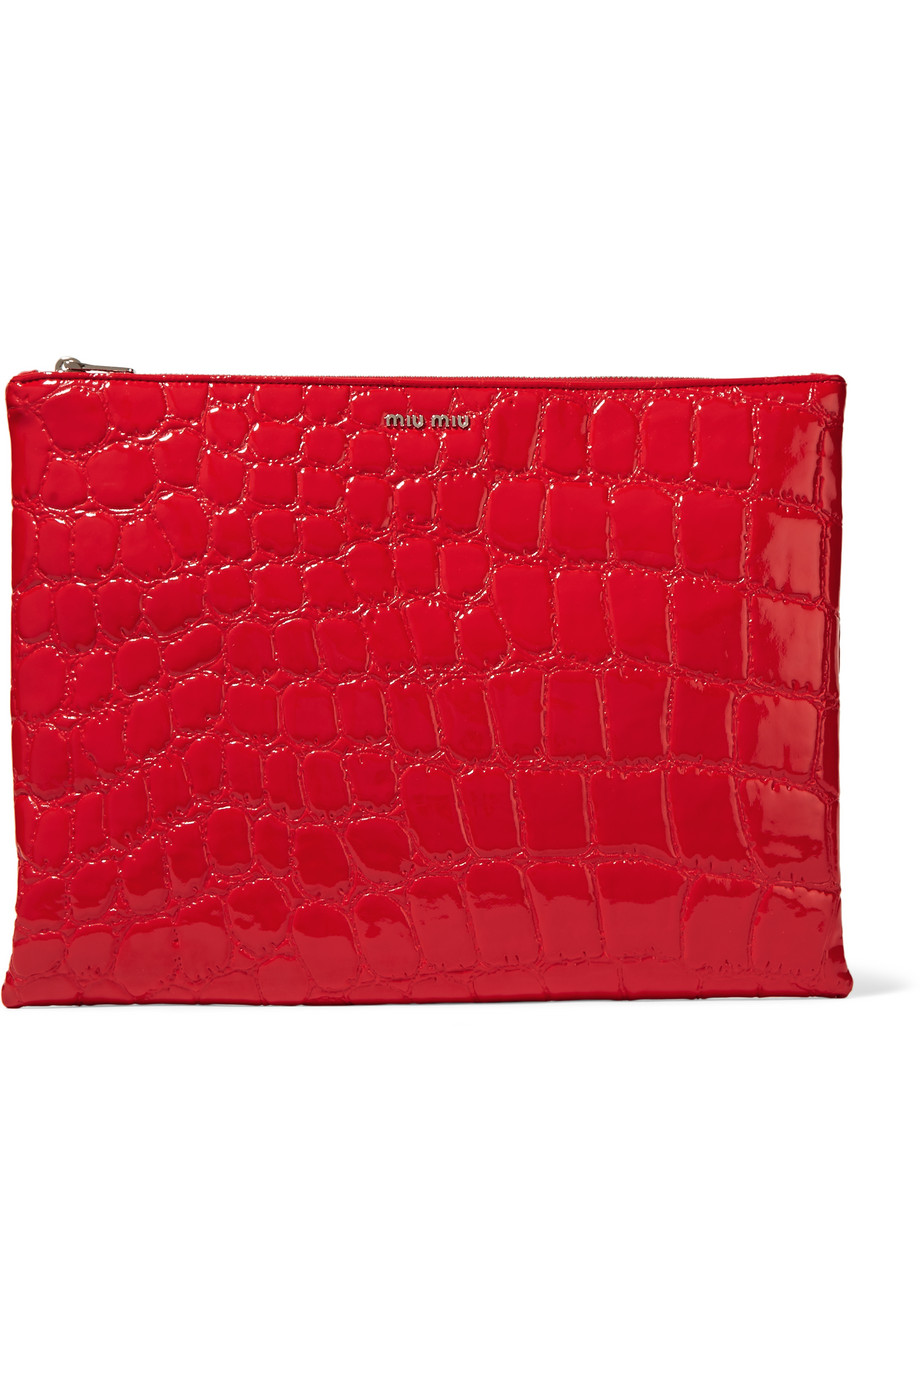 Miu Miu Alligator-Effect Faux Leather Clutch, Red, Women's